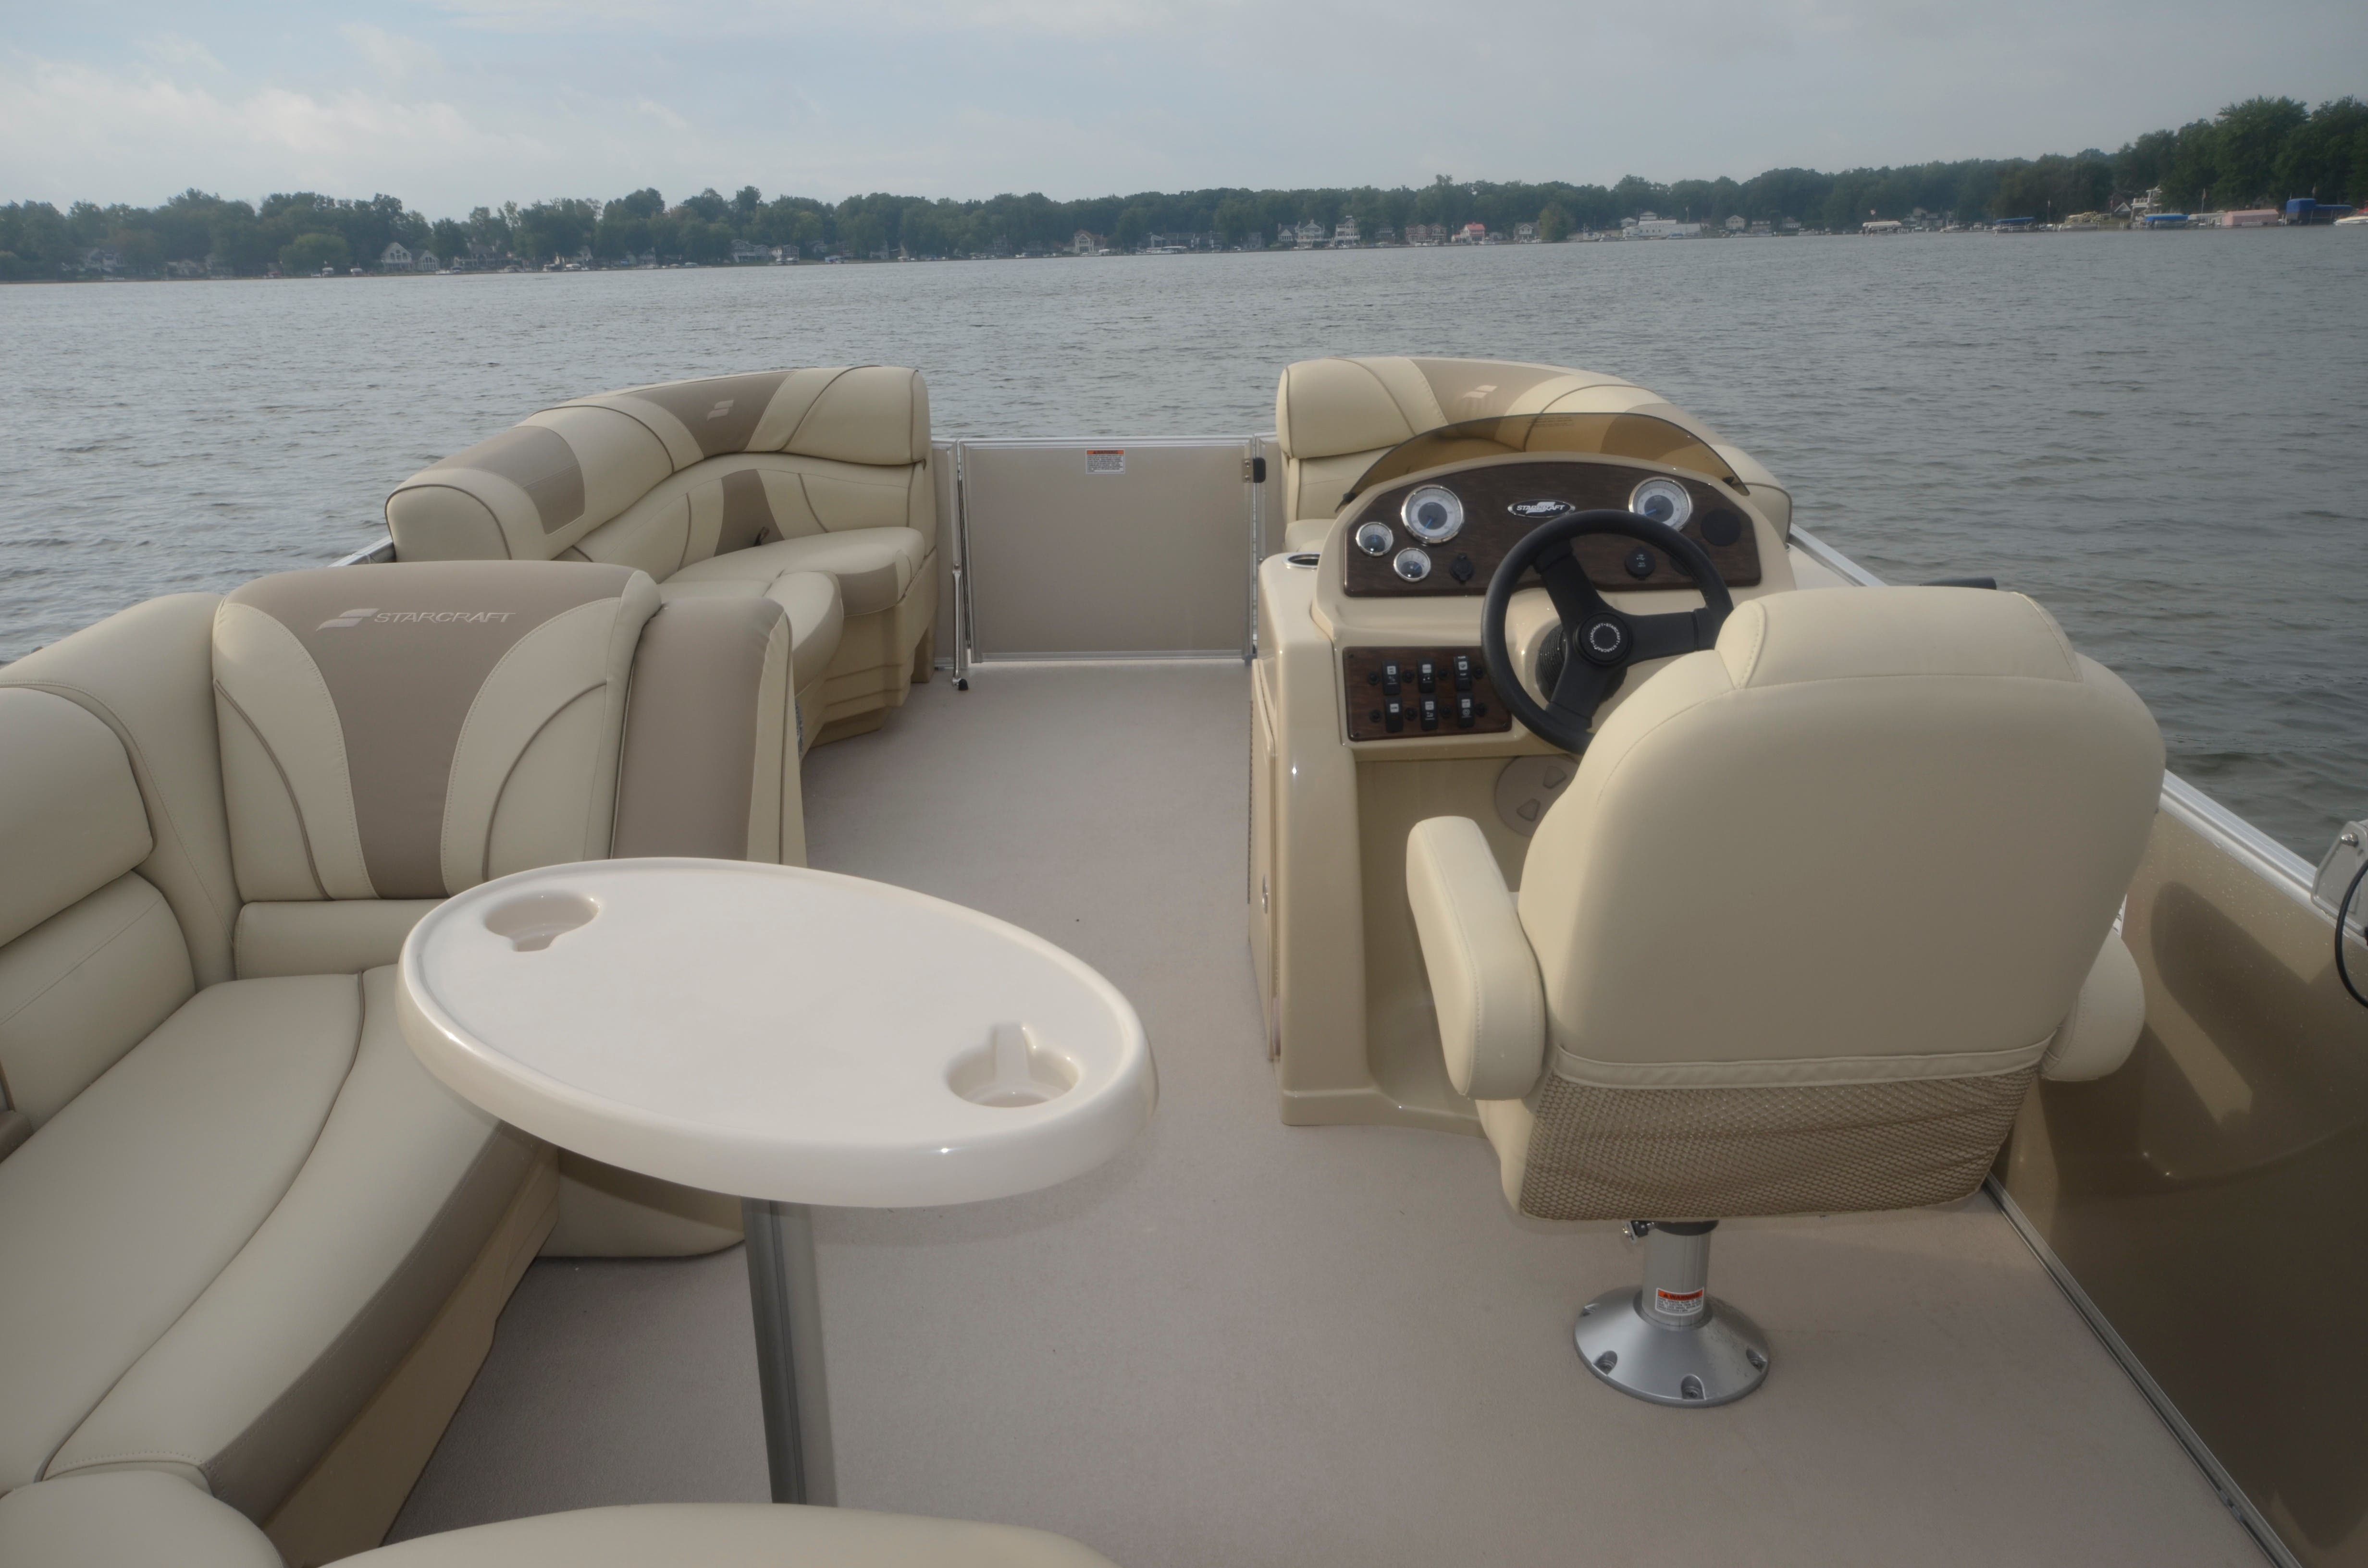 2022 Starcraft boat for sale, model of the boat is EX 20C & Image # 11 of 13